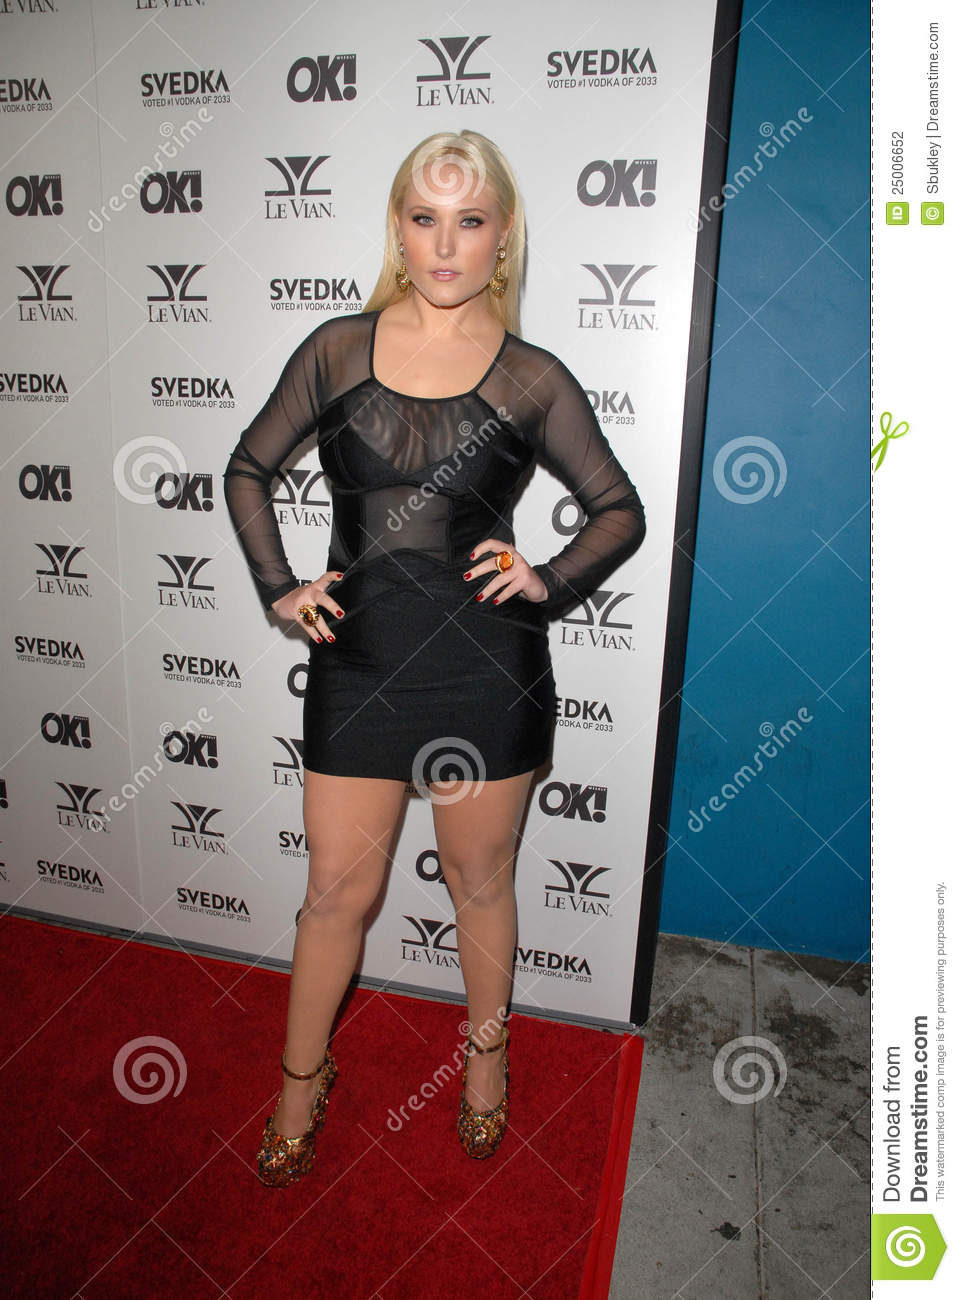 167 Hayley Hasselhoff Photos Free Royalty Free Stock Photos From Dreamstime